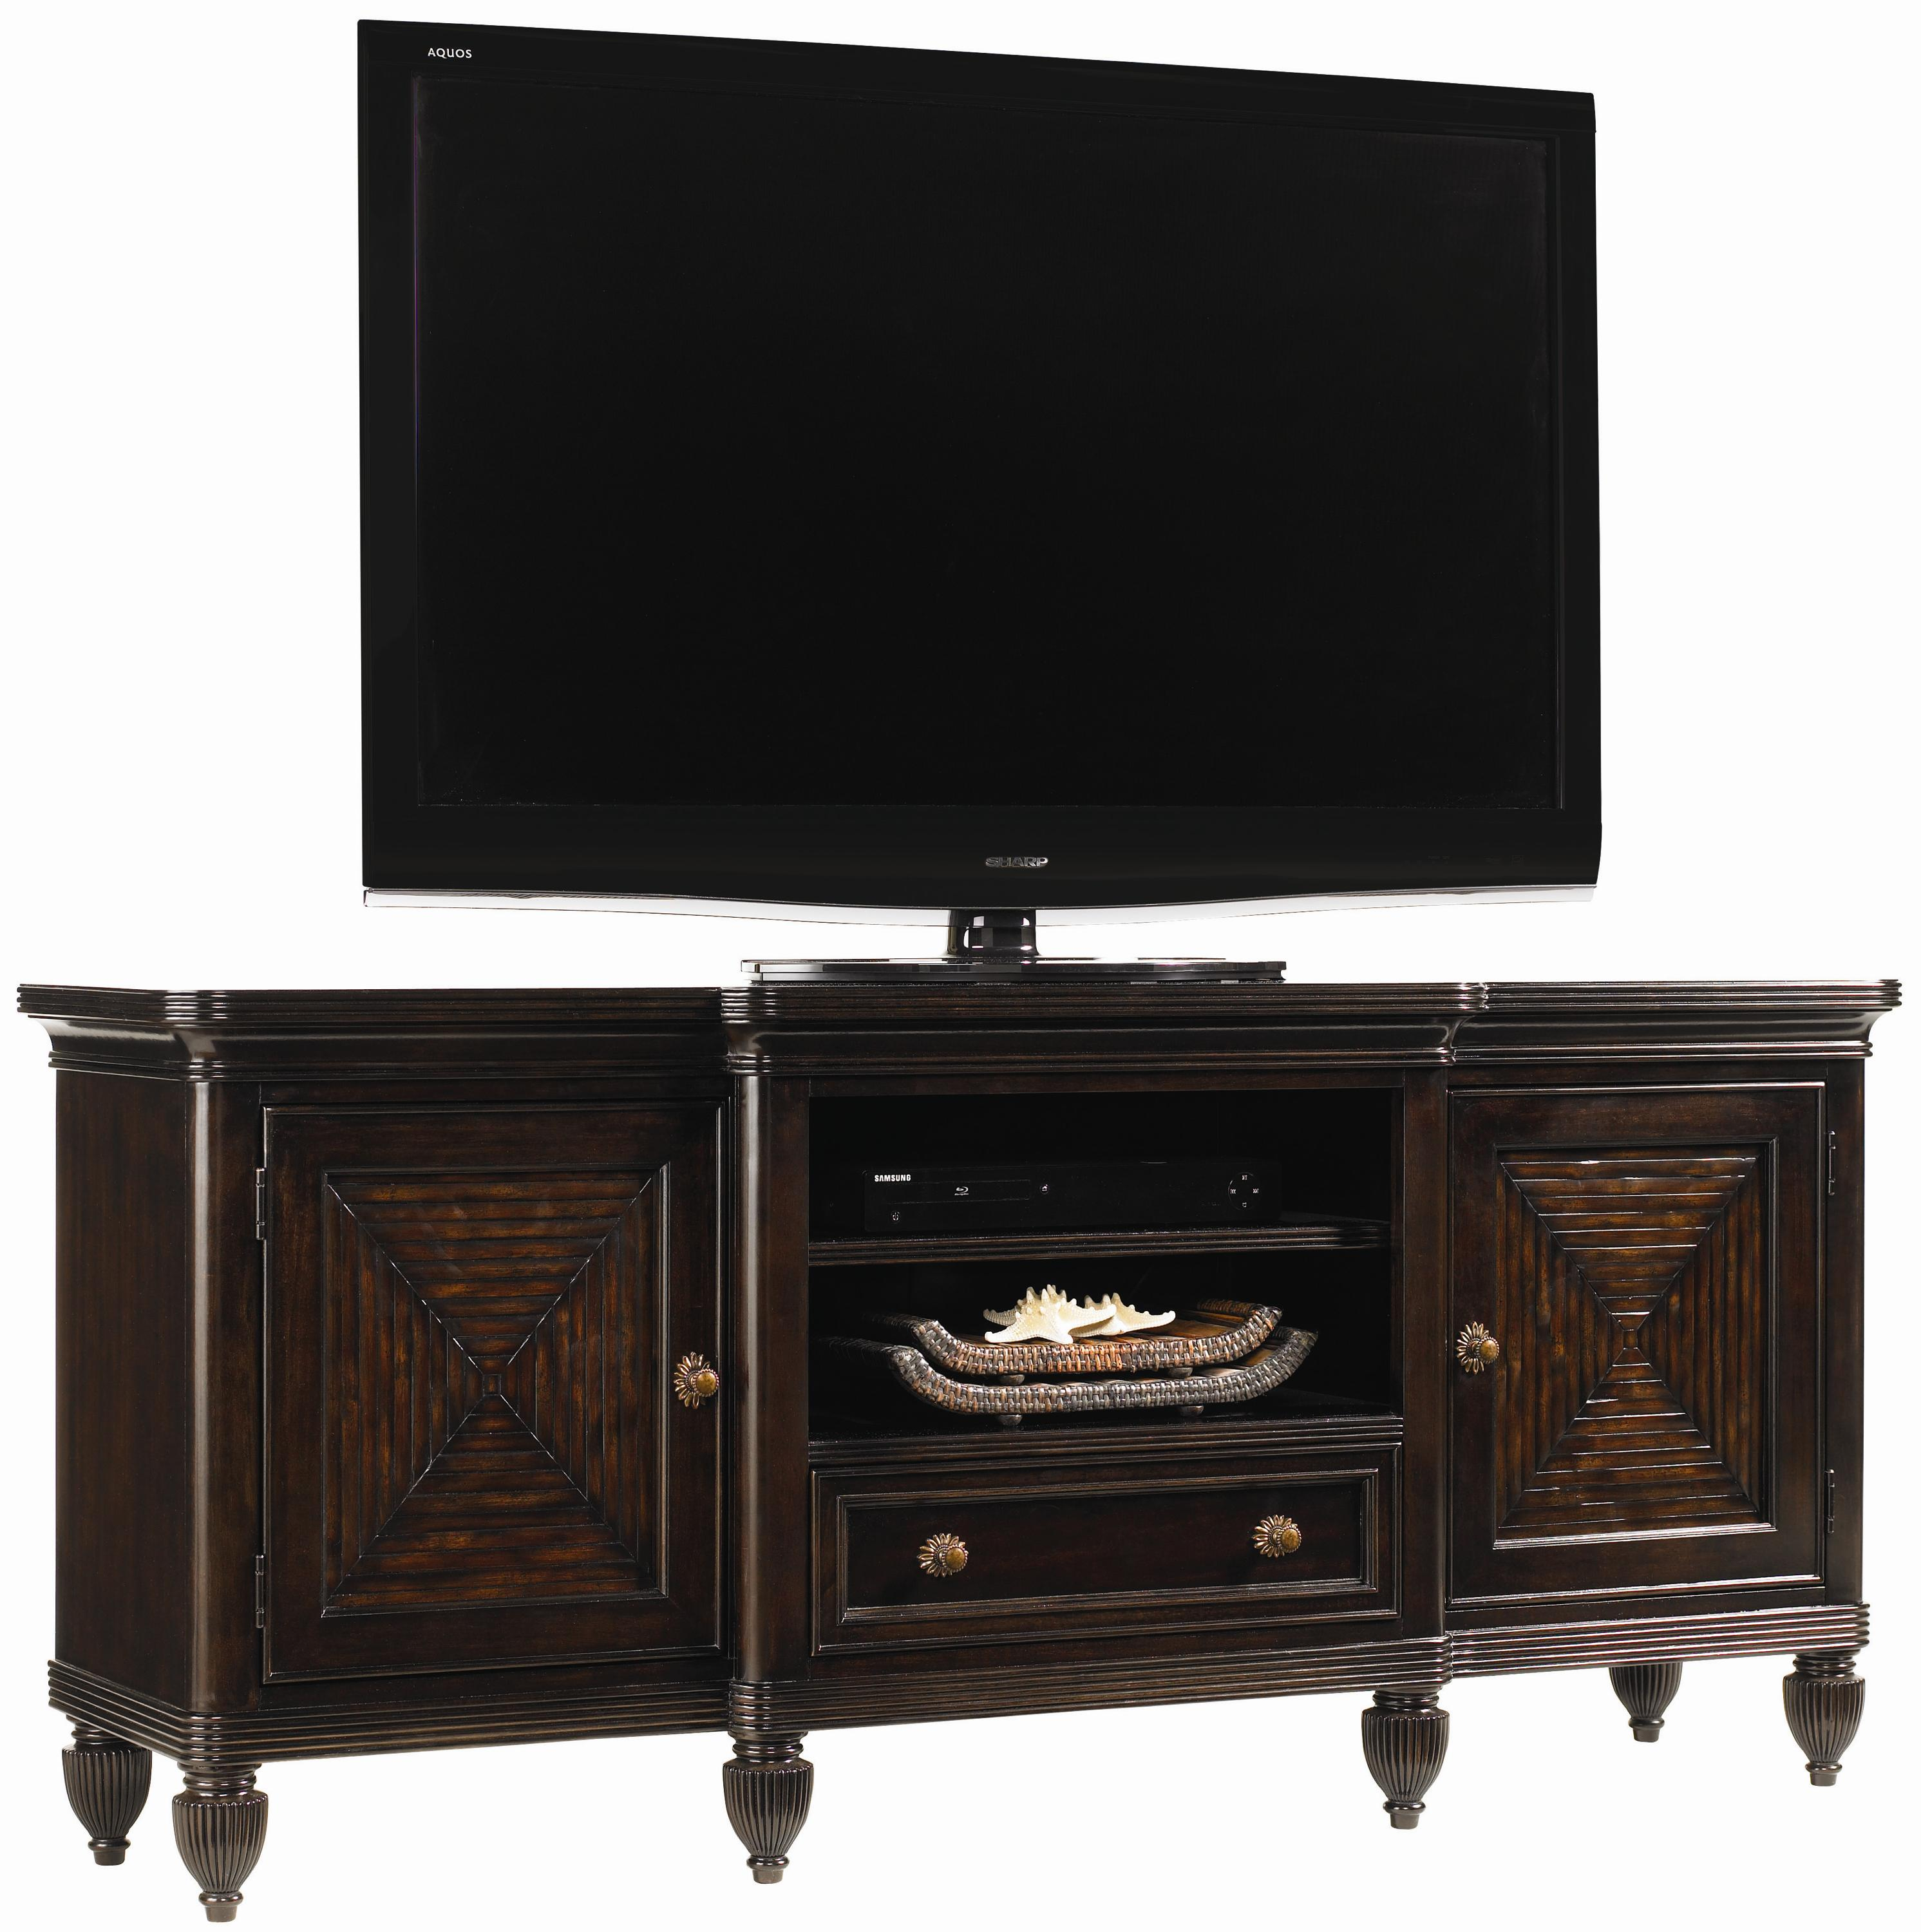 rooms endless screen ideas your console interior room tv go flat choices for diy to stand